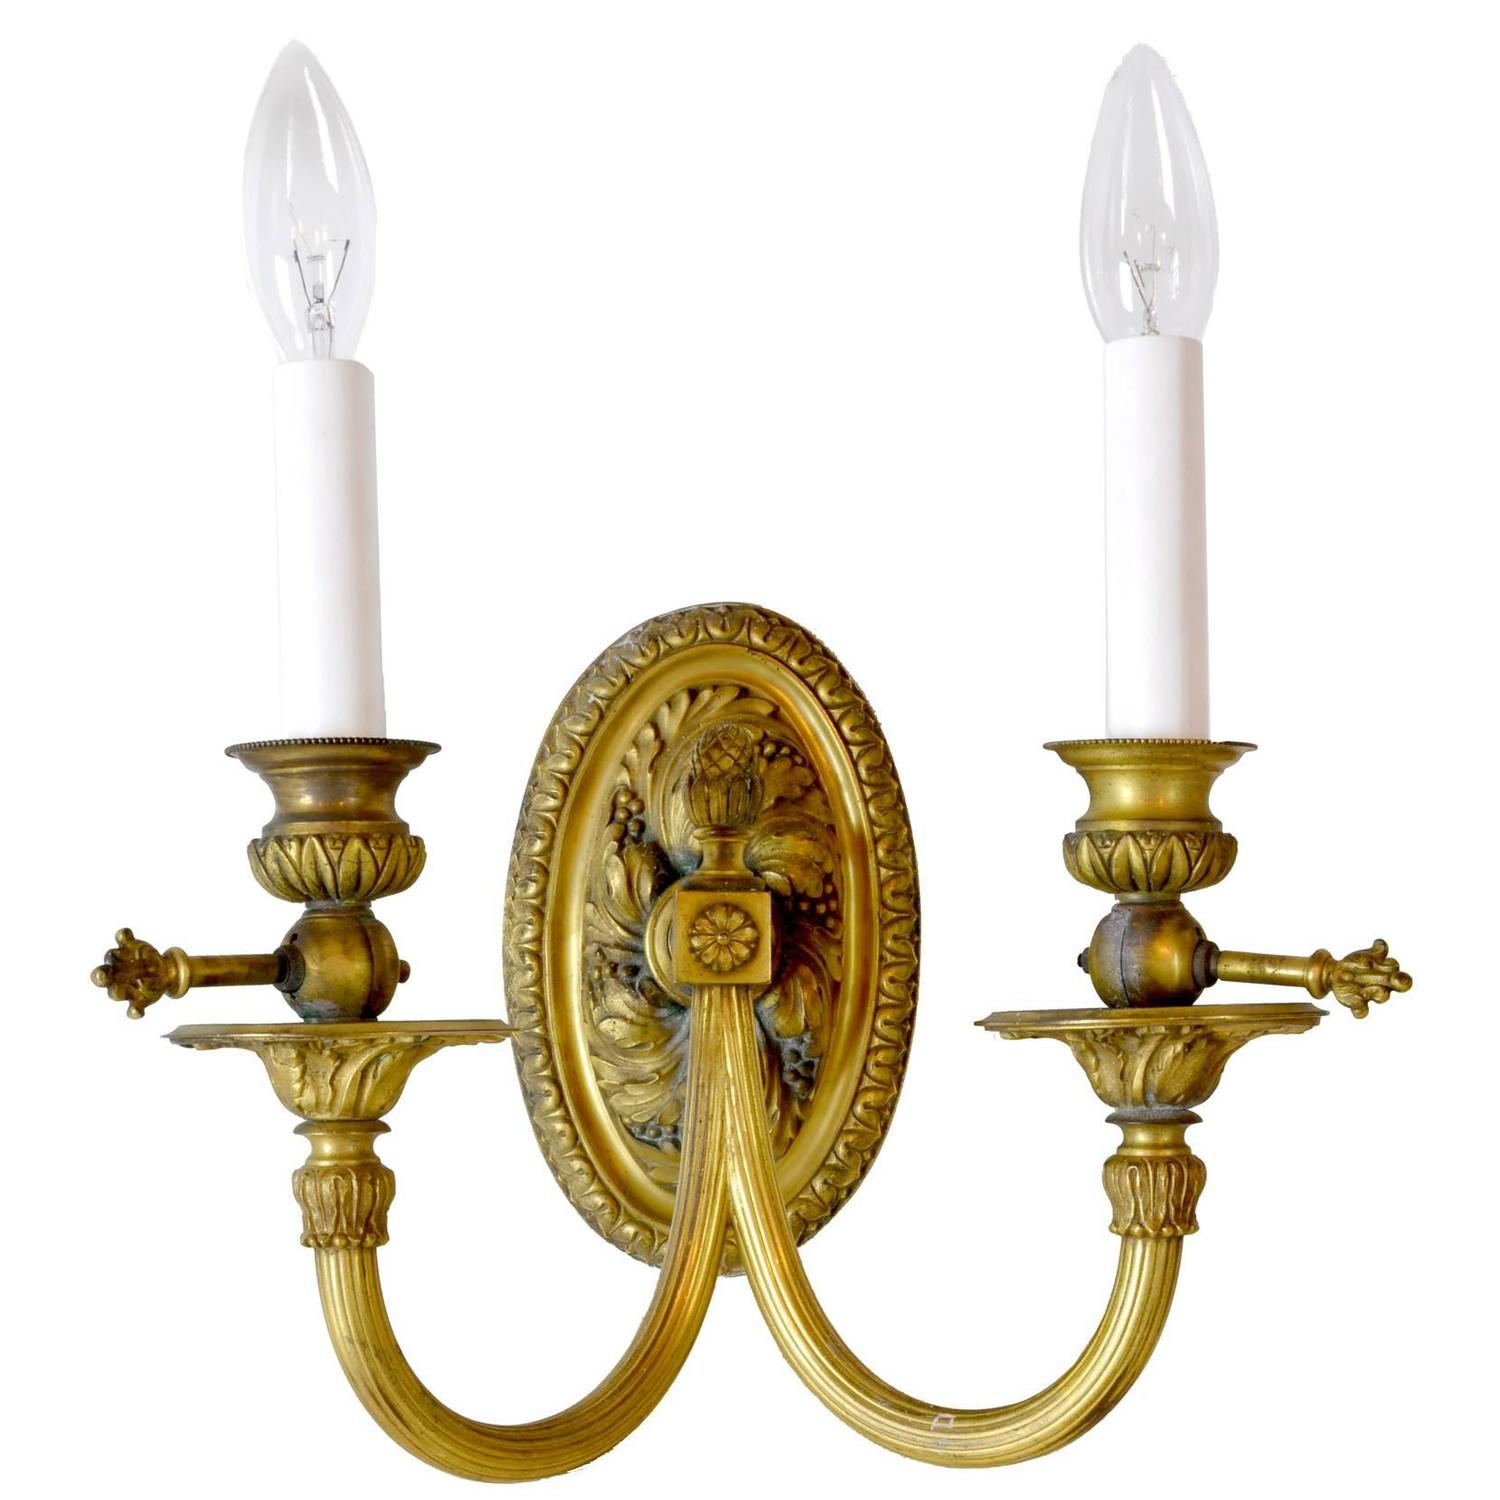 Brass Wall Sconces Electric : Fabulous Coverted Gas to Electric Cast Brass Sconces with Beautiful Details For Sale at 1stdibs